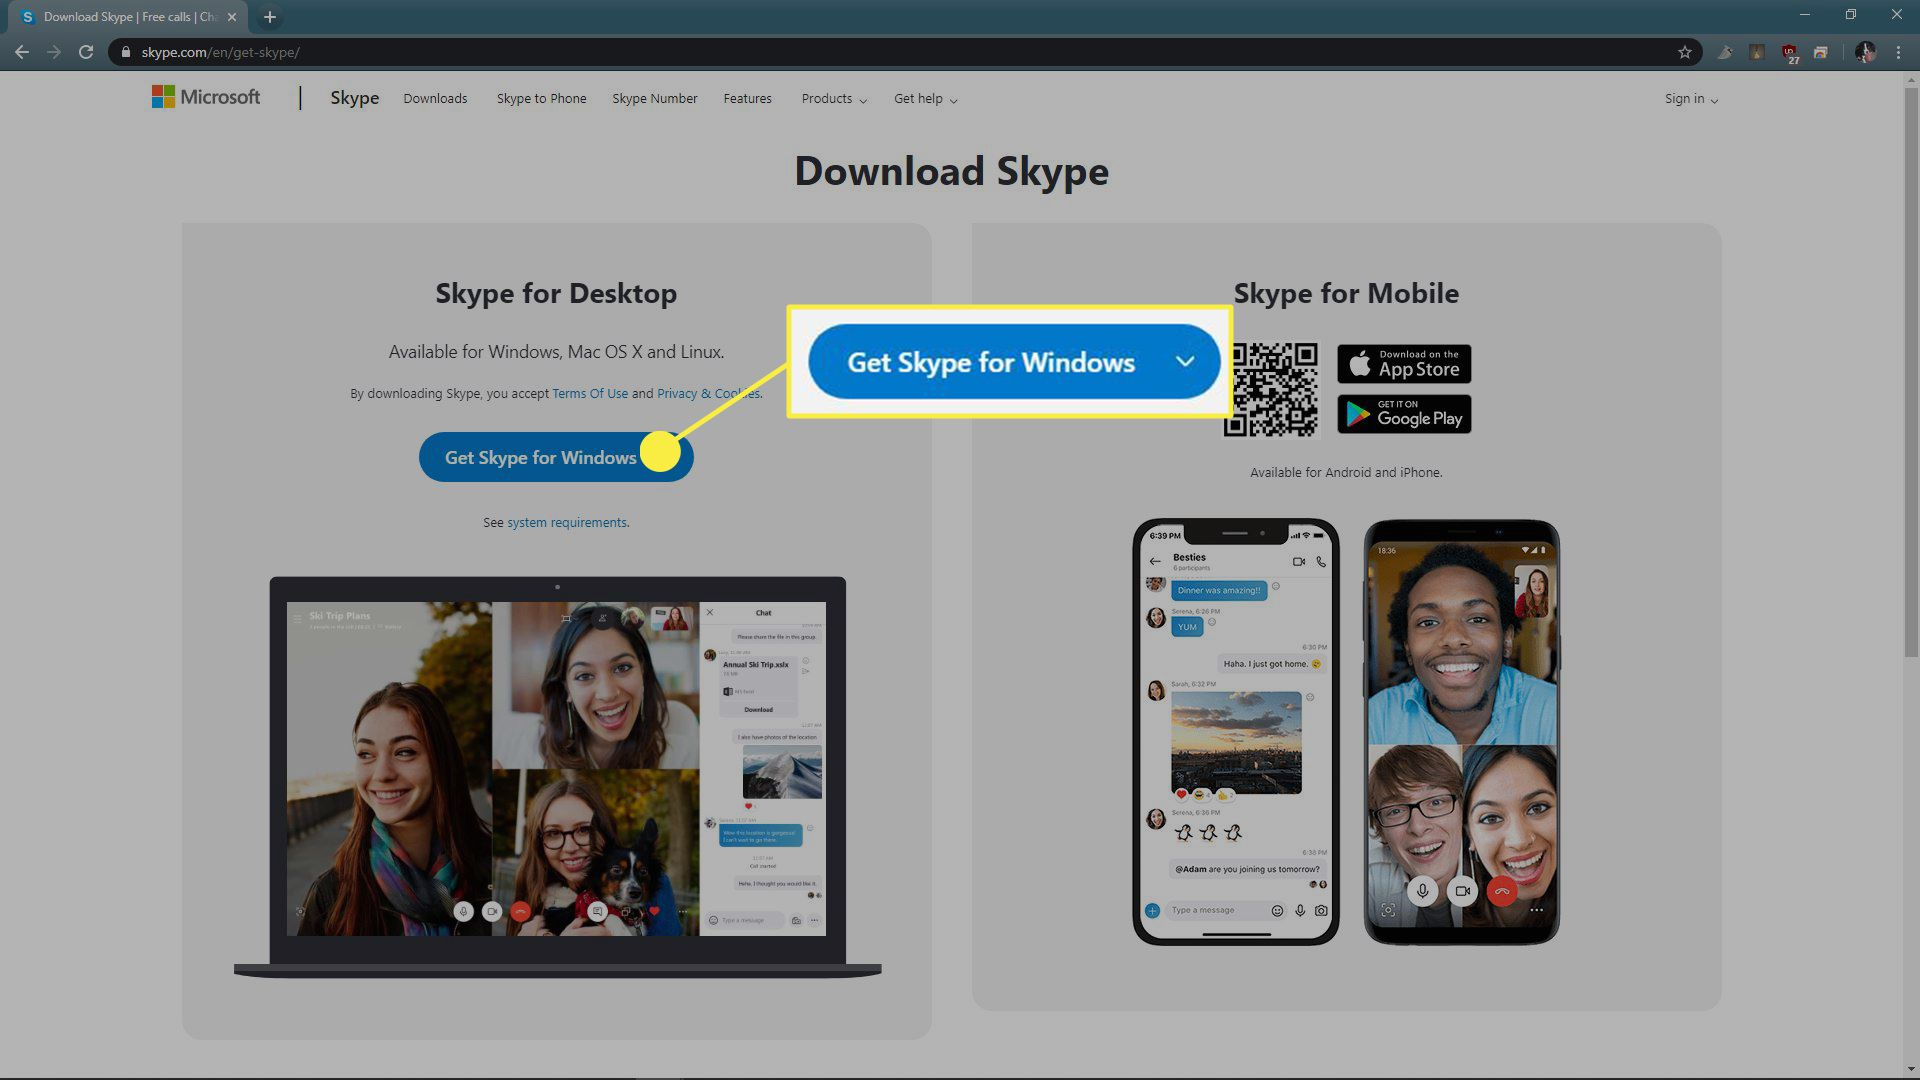 A screenshot of the Skype download page.